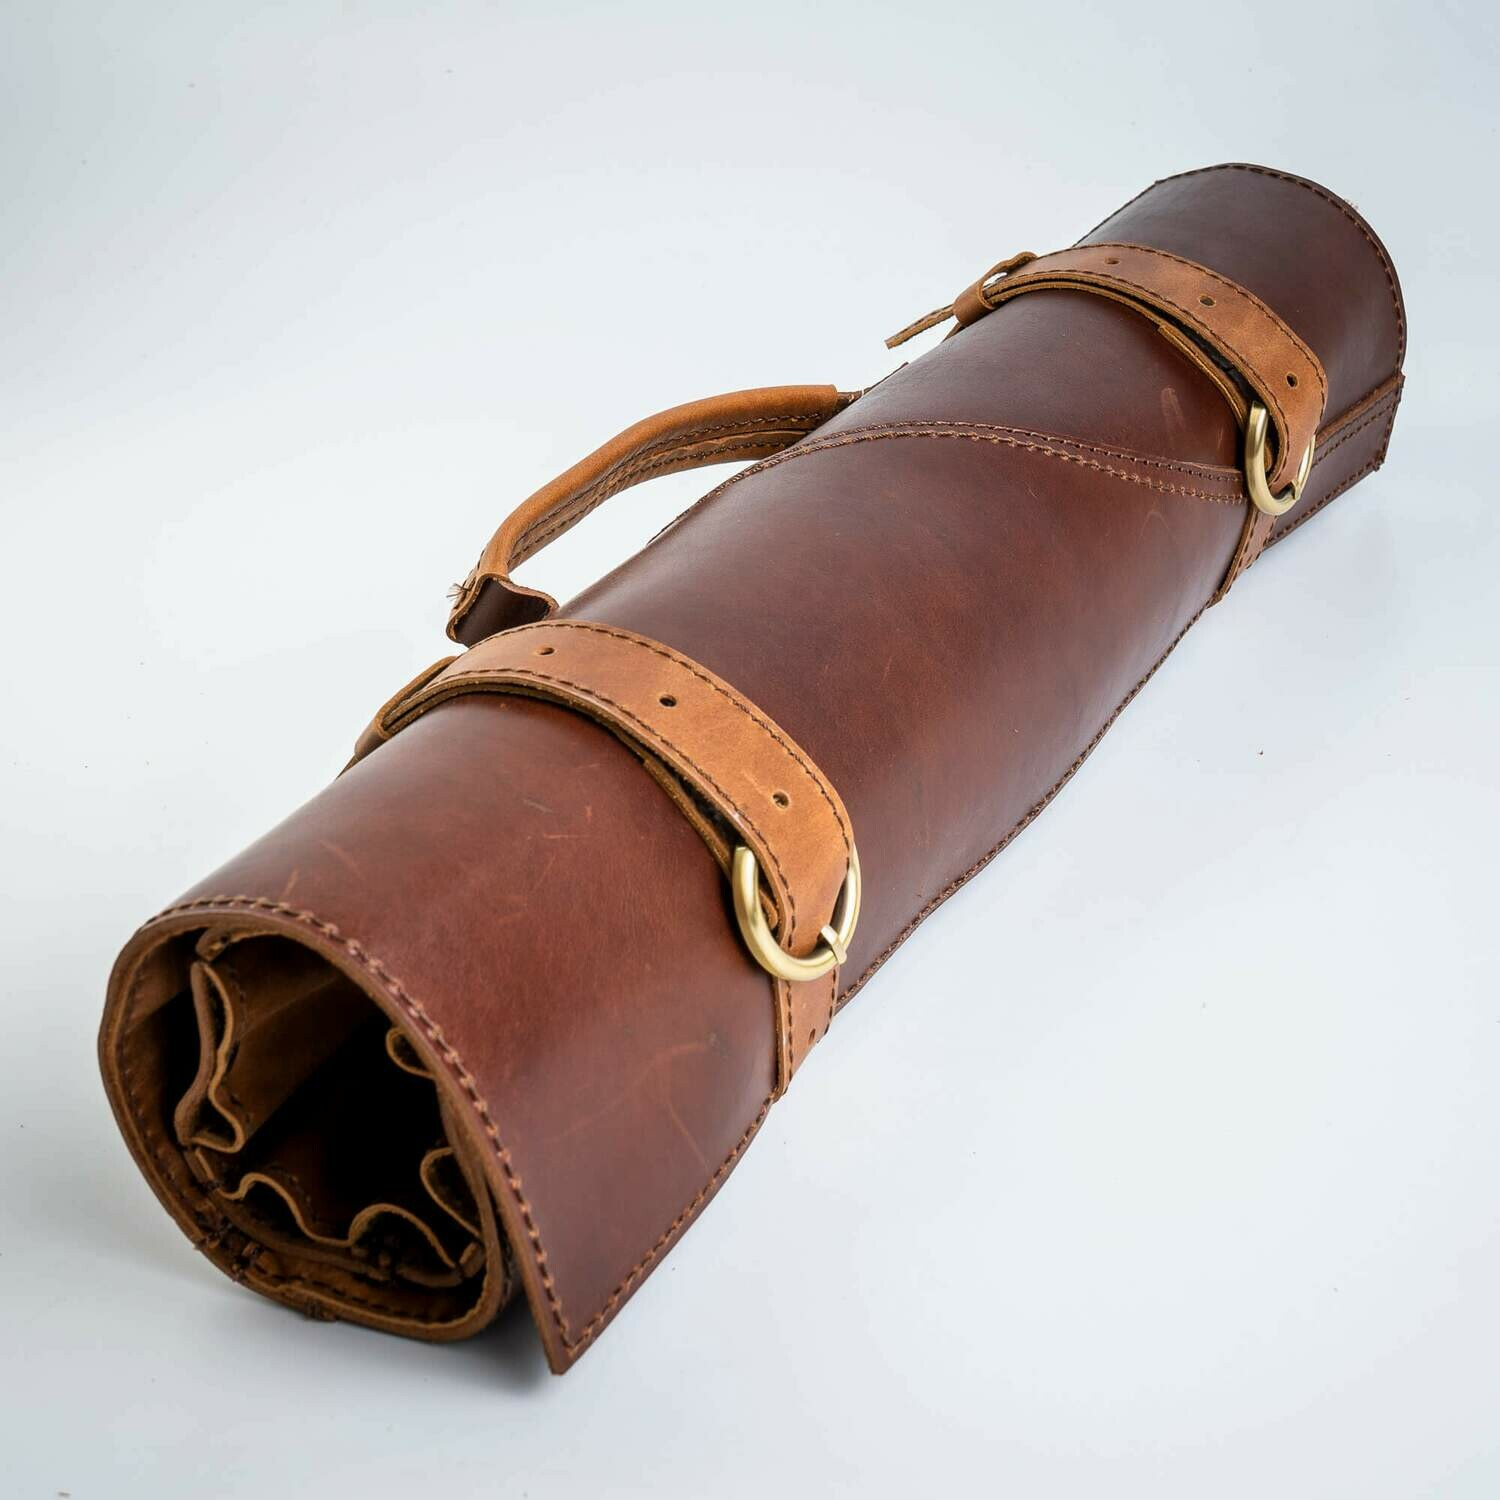 ROLL-LR529 - LEATHER BAG SCREW FOR KNIVES